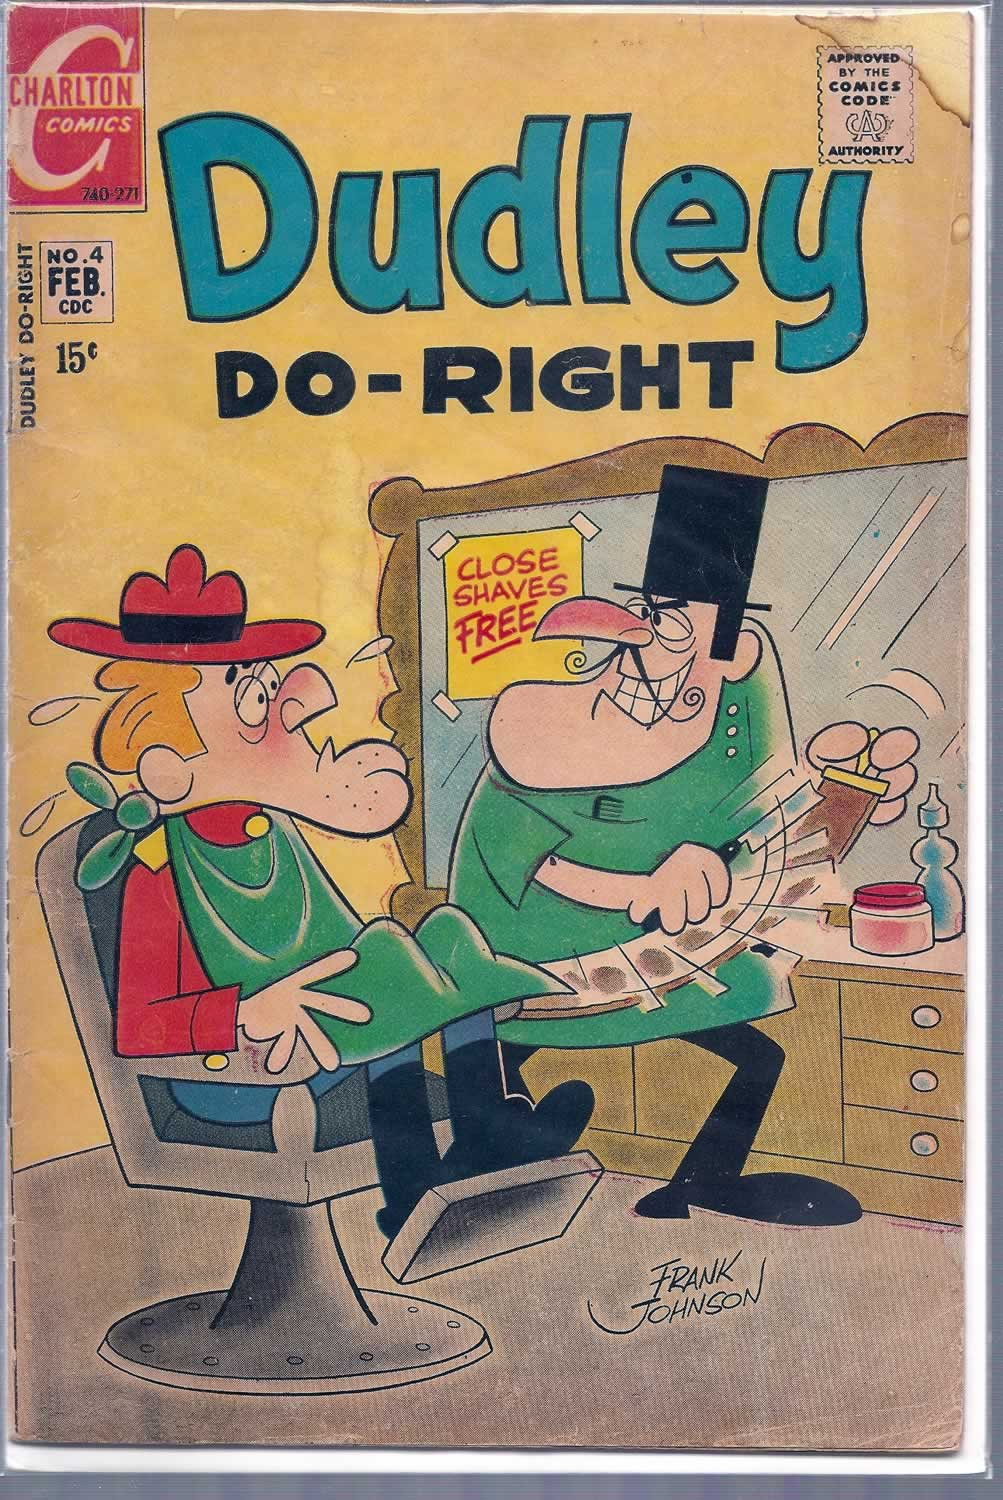 10- Dudley Do-Right